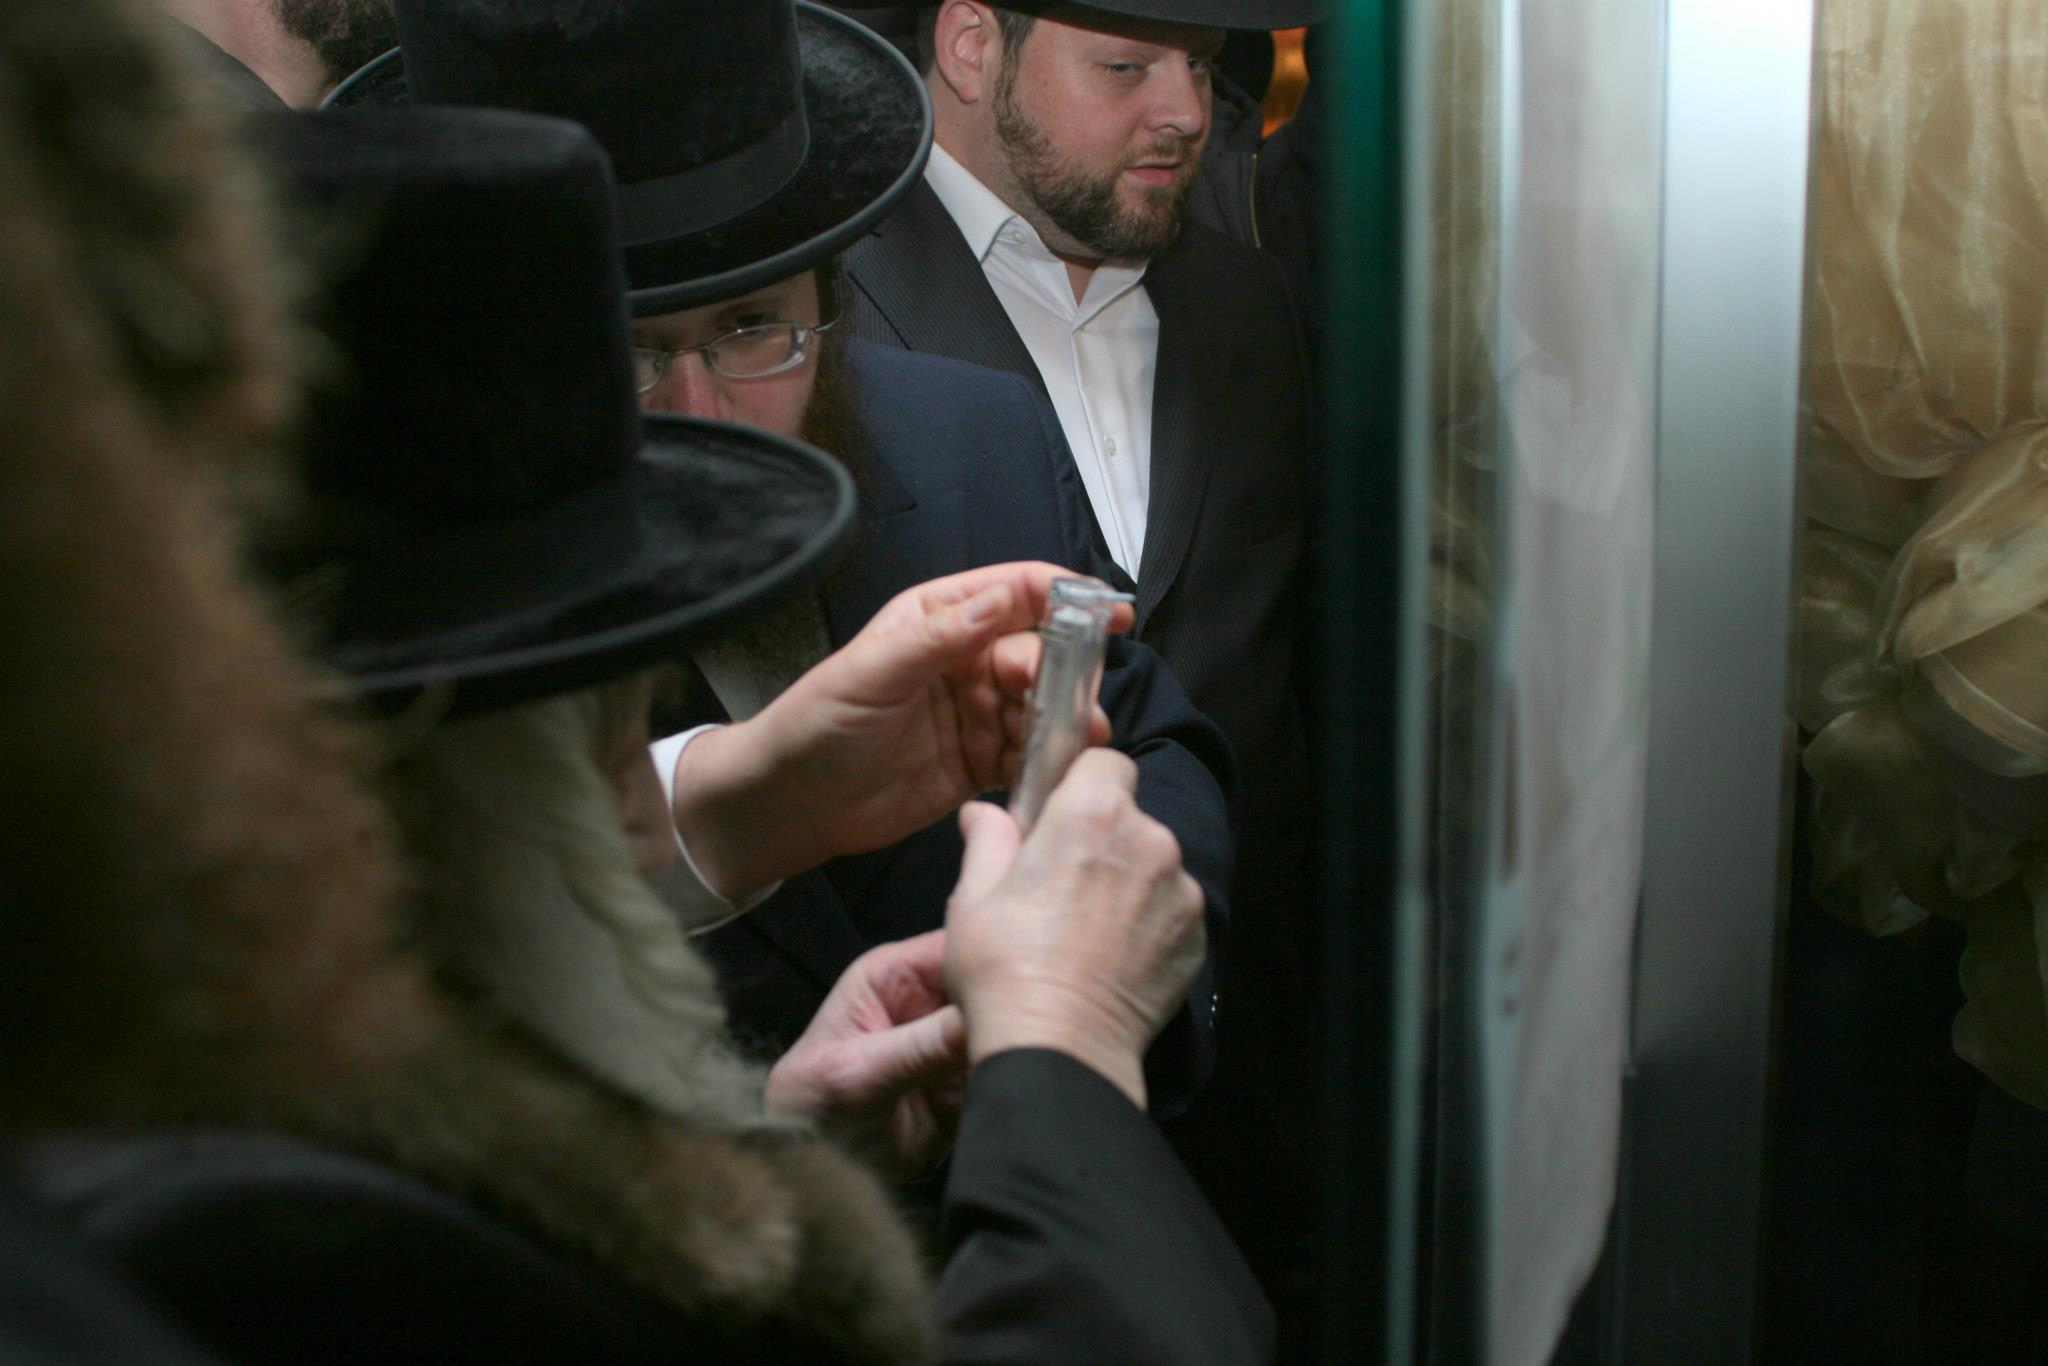 Masbia_Supporter__Skulen_Rebbe__Rabbi_Israel_Abraham_Portugal_Affixing_the_Mezuzah_on_the_Front_Door_of_Masbia_of_Flatbush3.jpg